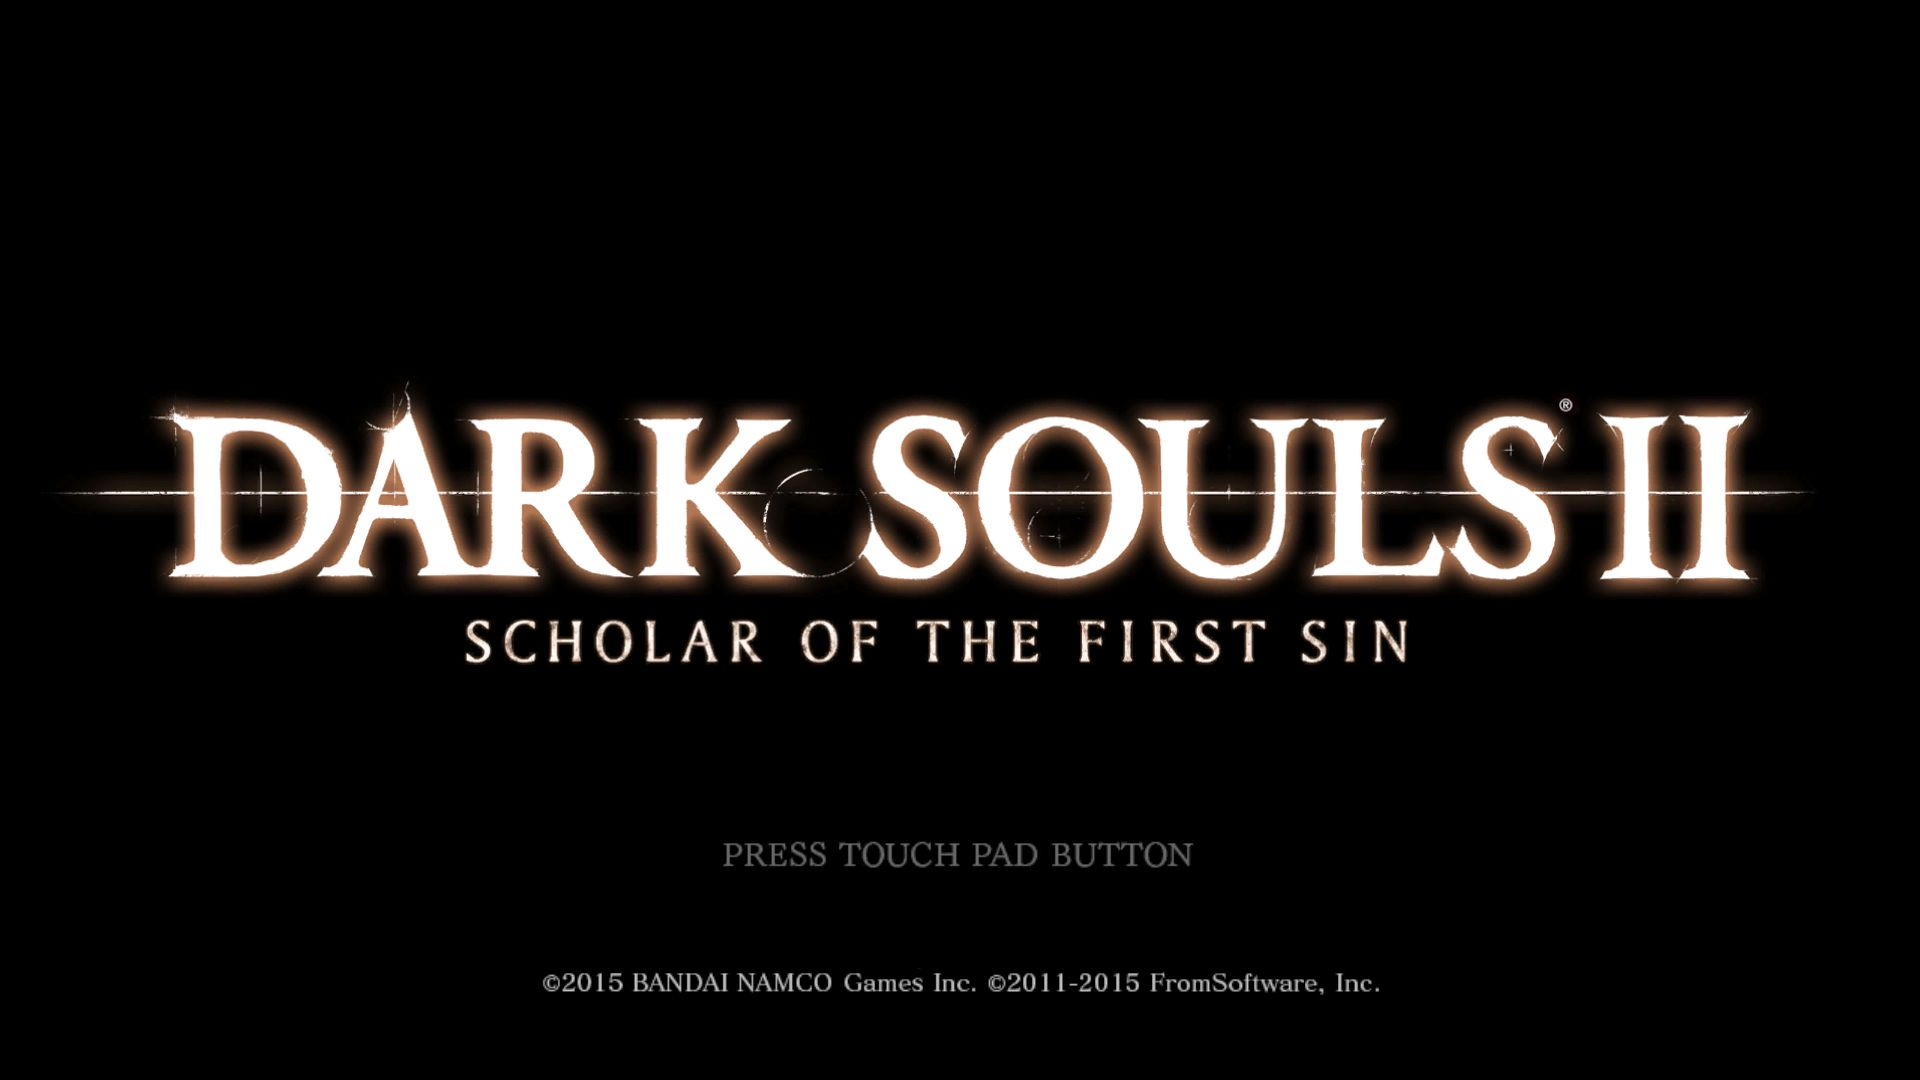 DARK SOULS Ⅱ SCHOLAR OF THE FIRST SIN Vol.2